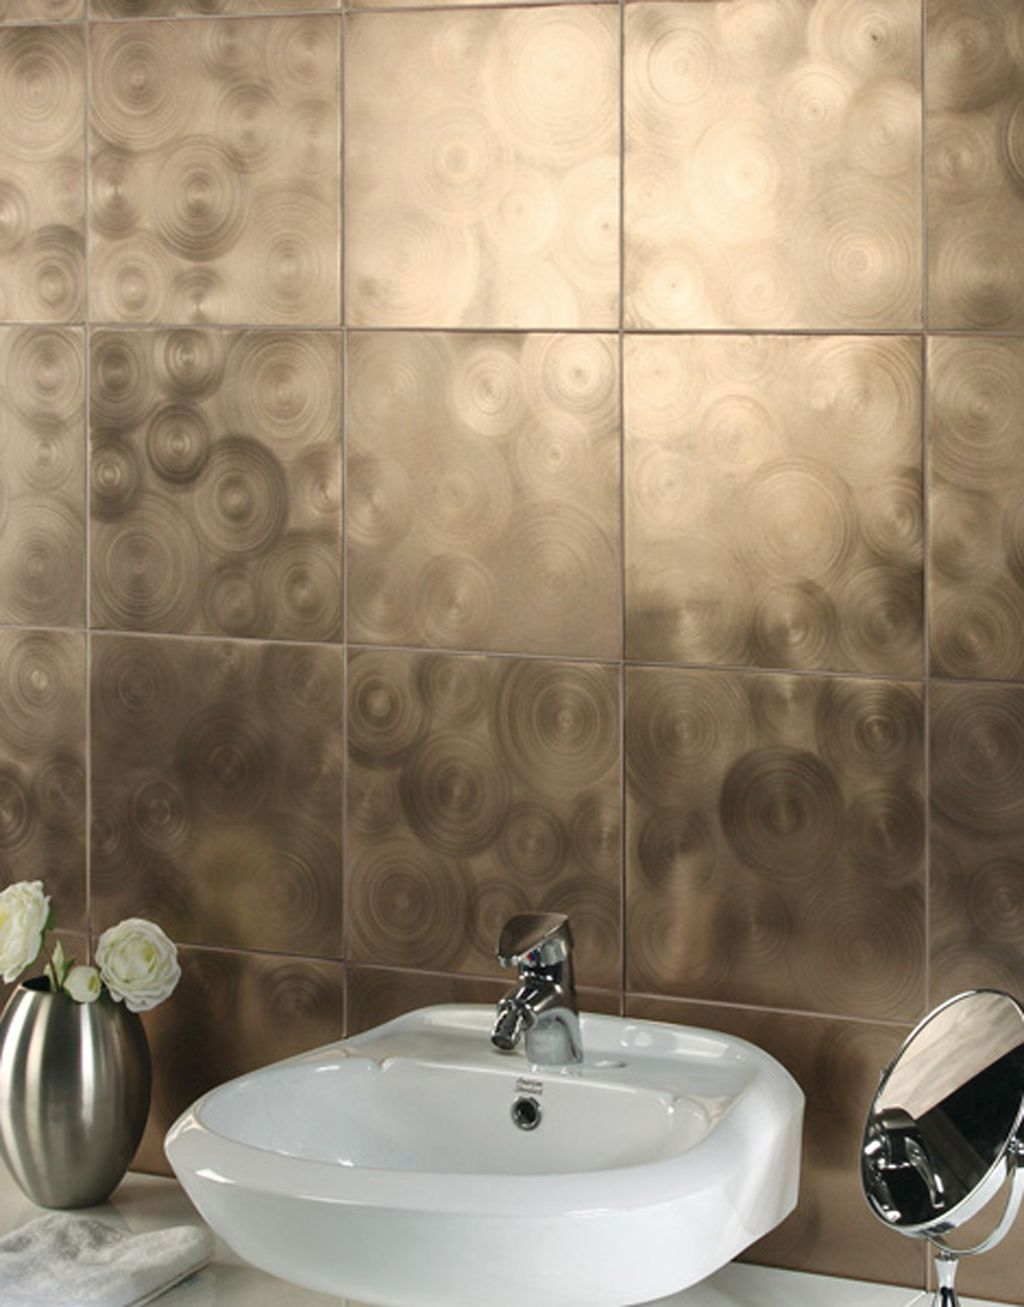 Shiny Wall Tile Decor Ideas Bathroom Tile Designs